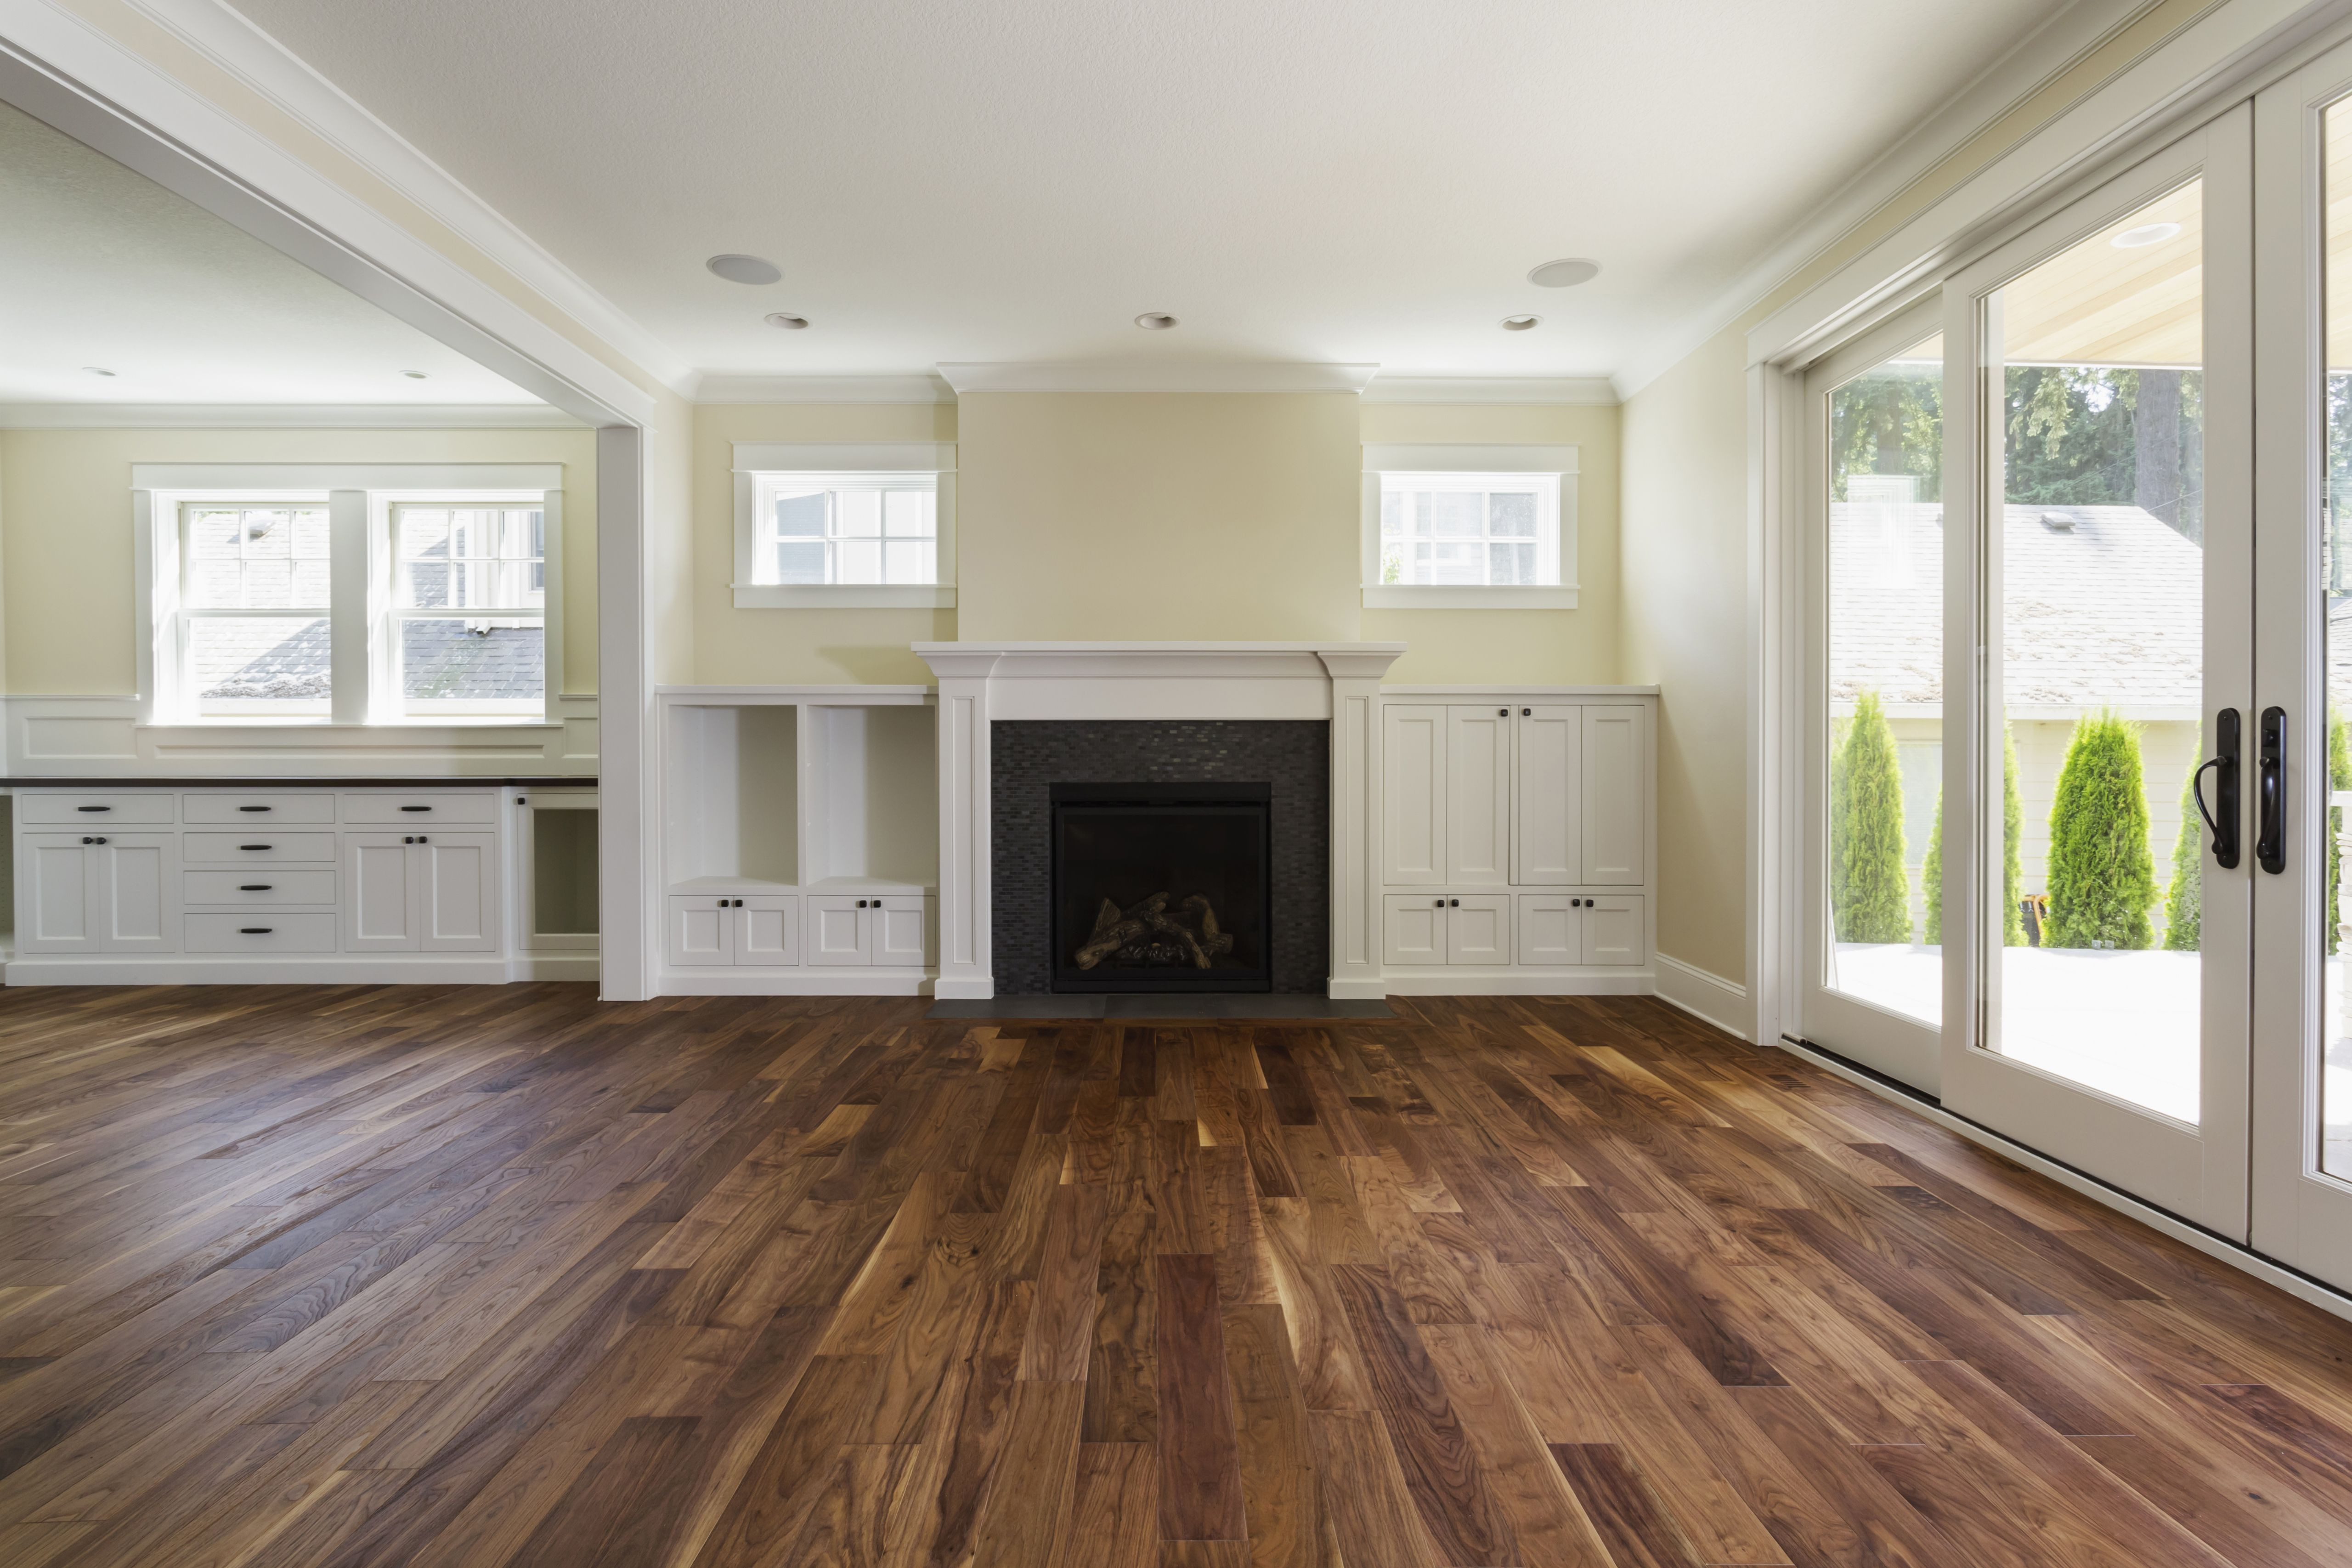 cost to redo hardwood floors of the pros and cons of prefinished hardwood flooring within fireplace and built in shelves in living room 482143011 57bef8e33df78cc16e035397